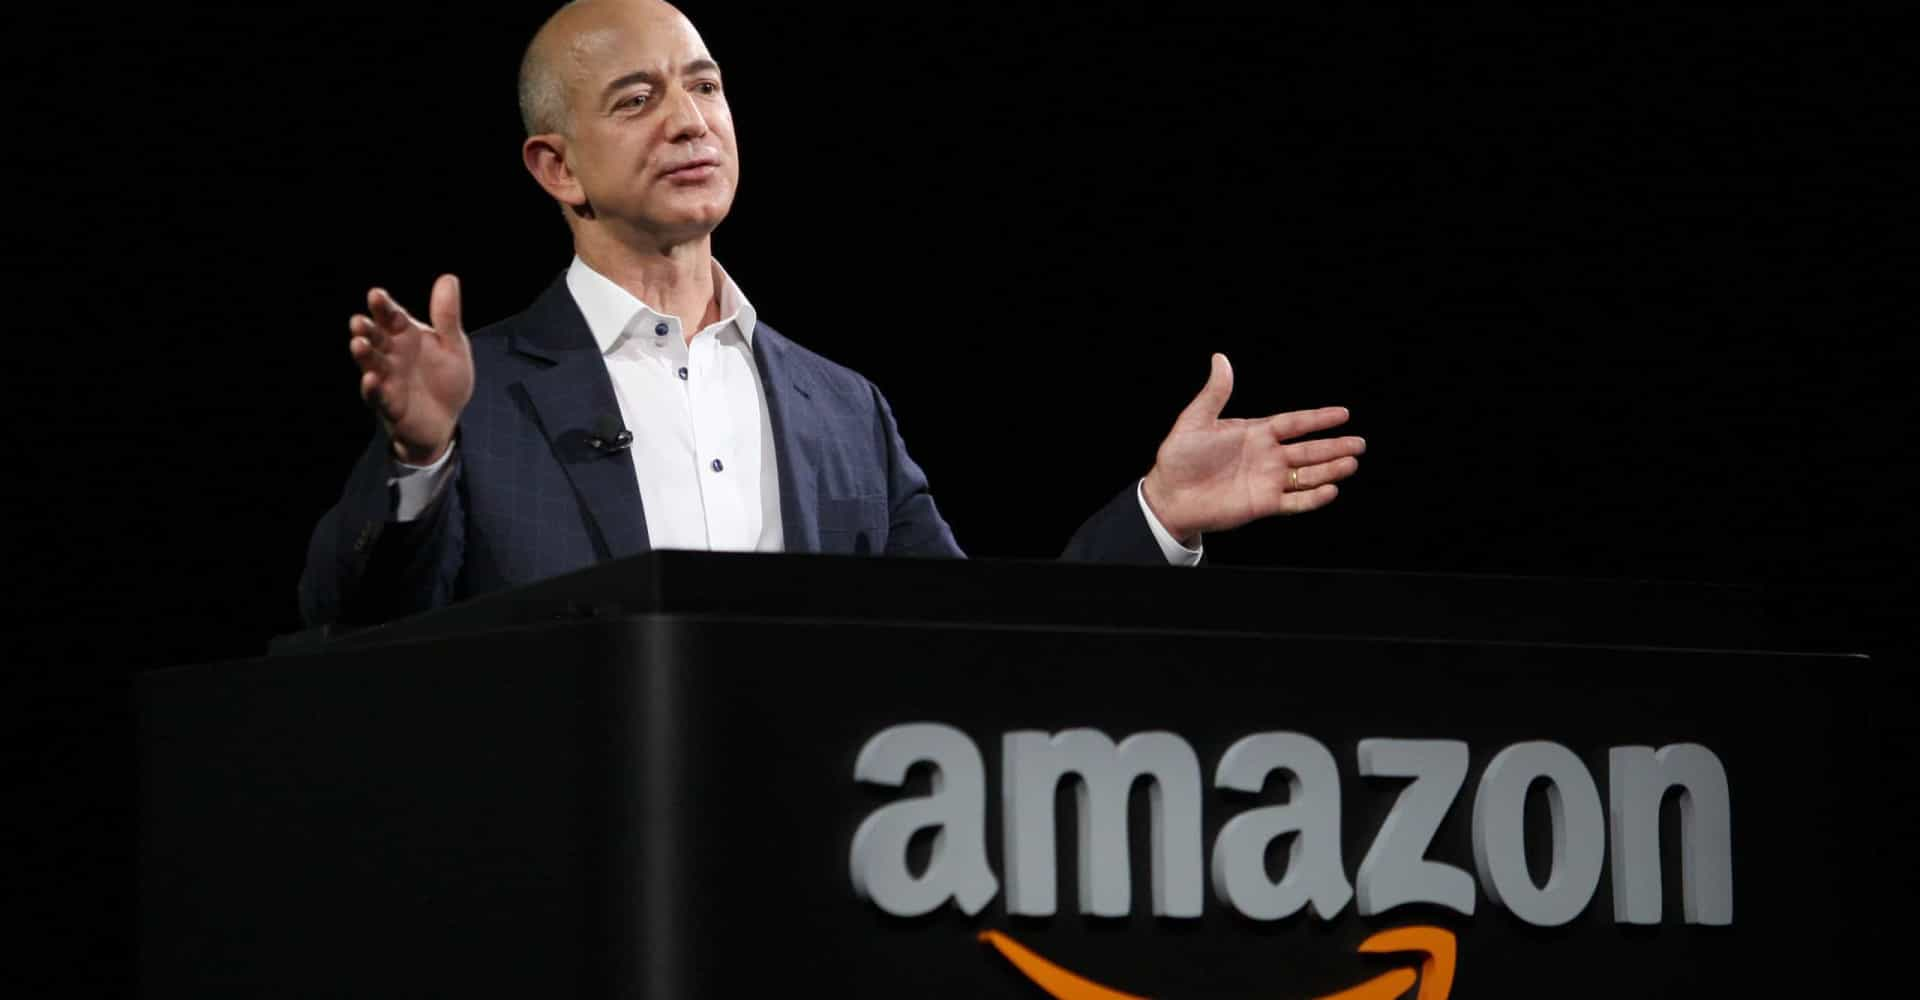 Así es la incomprensible riqueza de Jeff Bezos